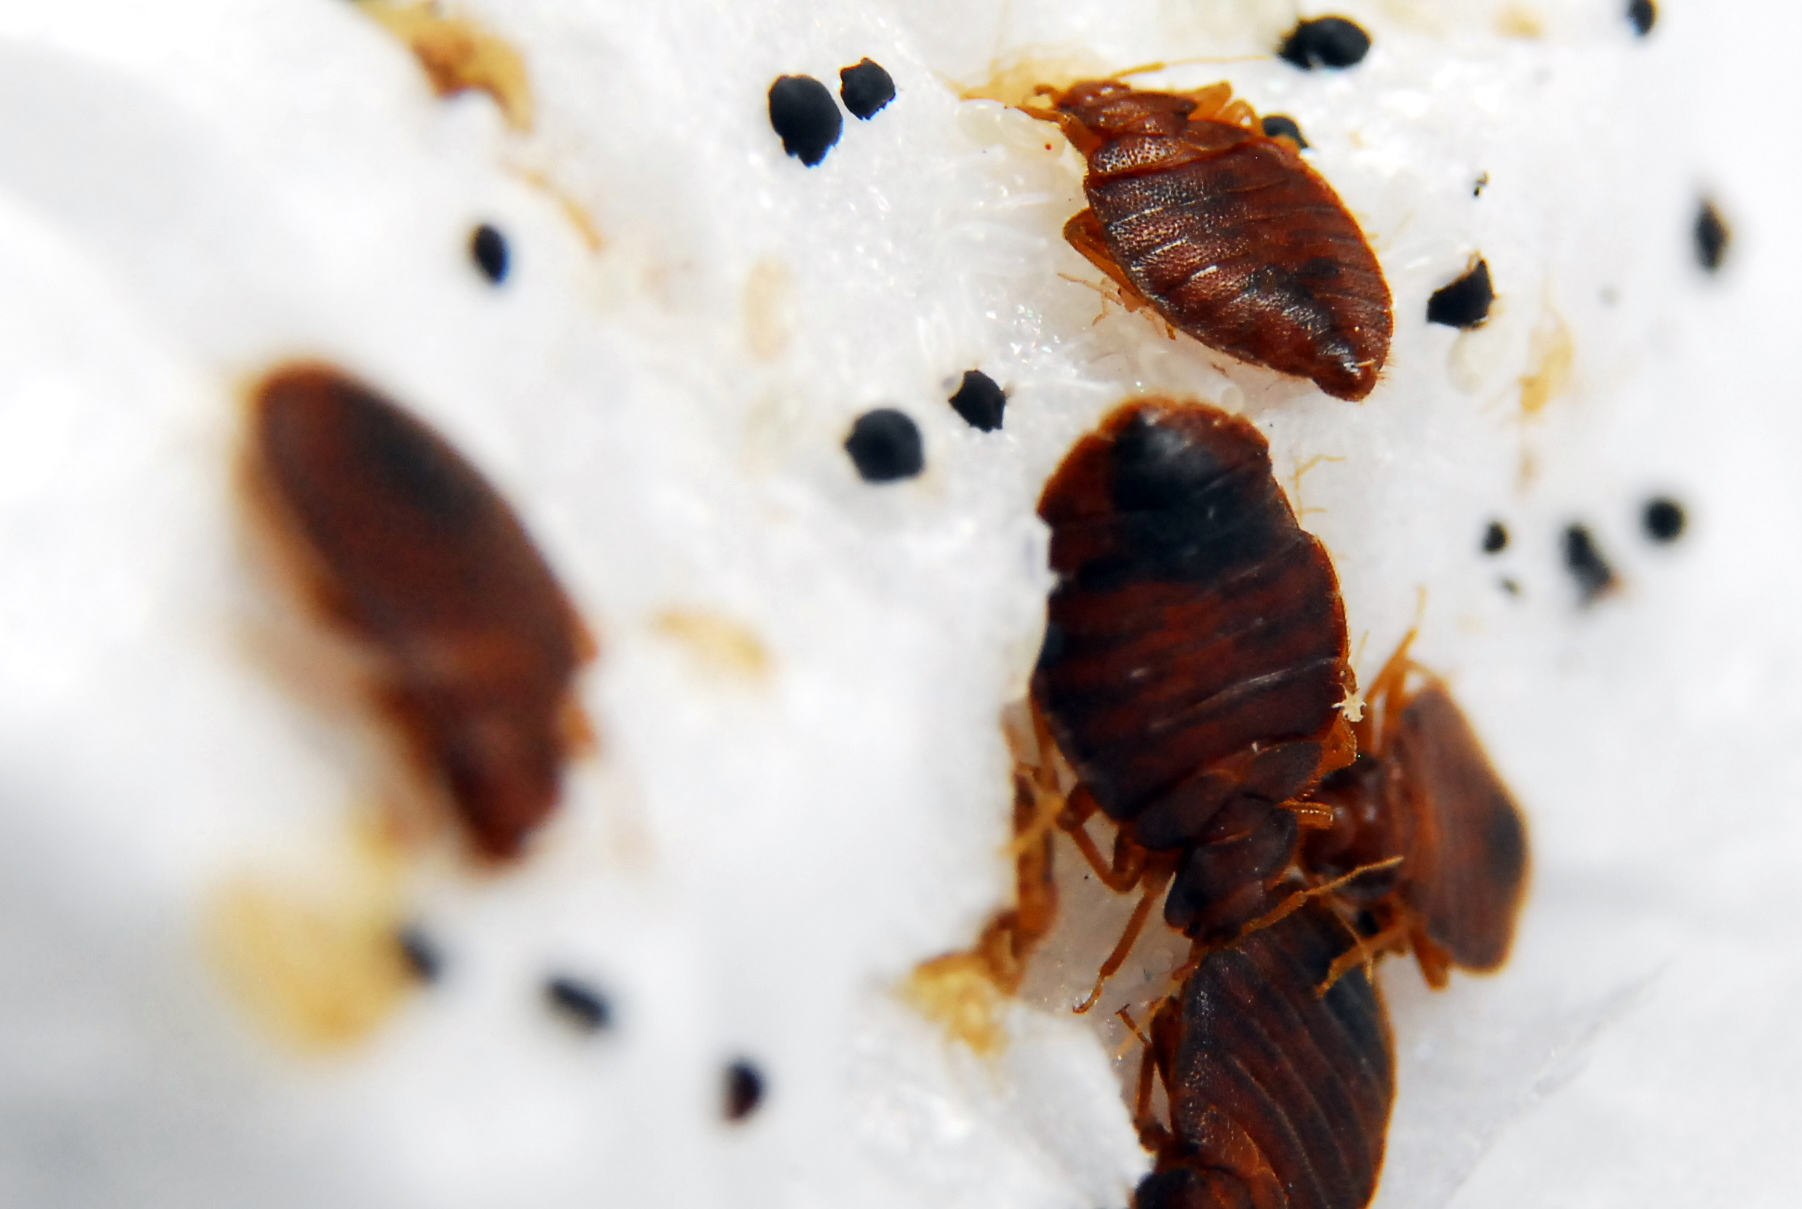 How to Check for Bed Bugs in Houses, Hotels and Offices ...